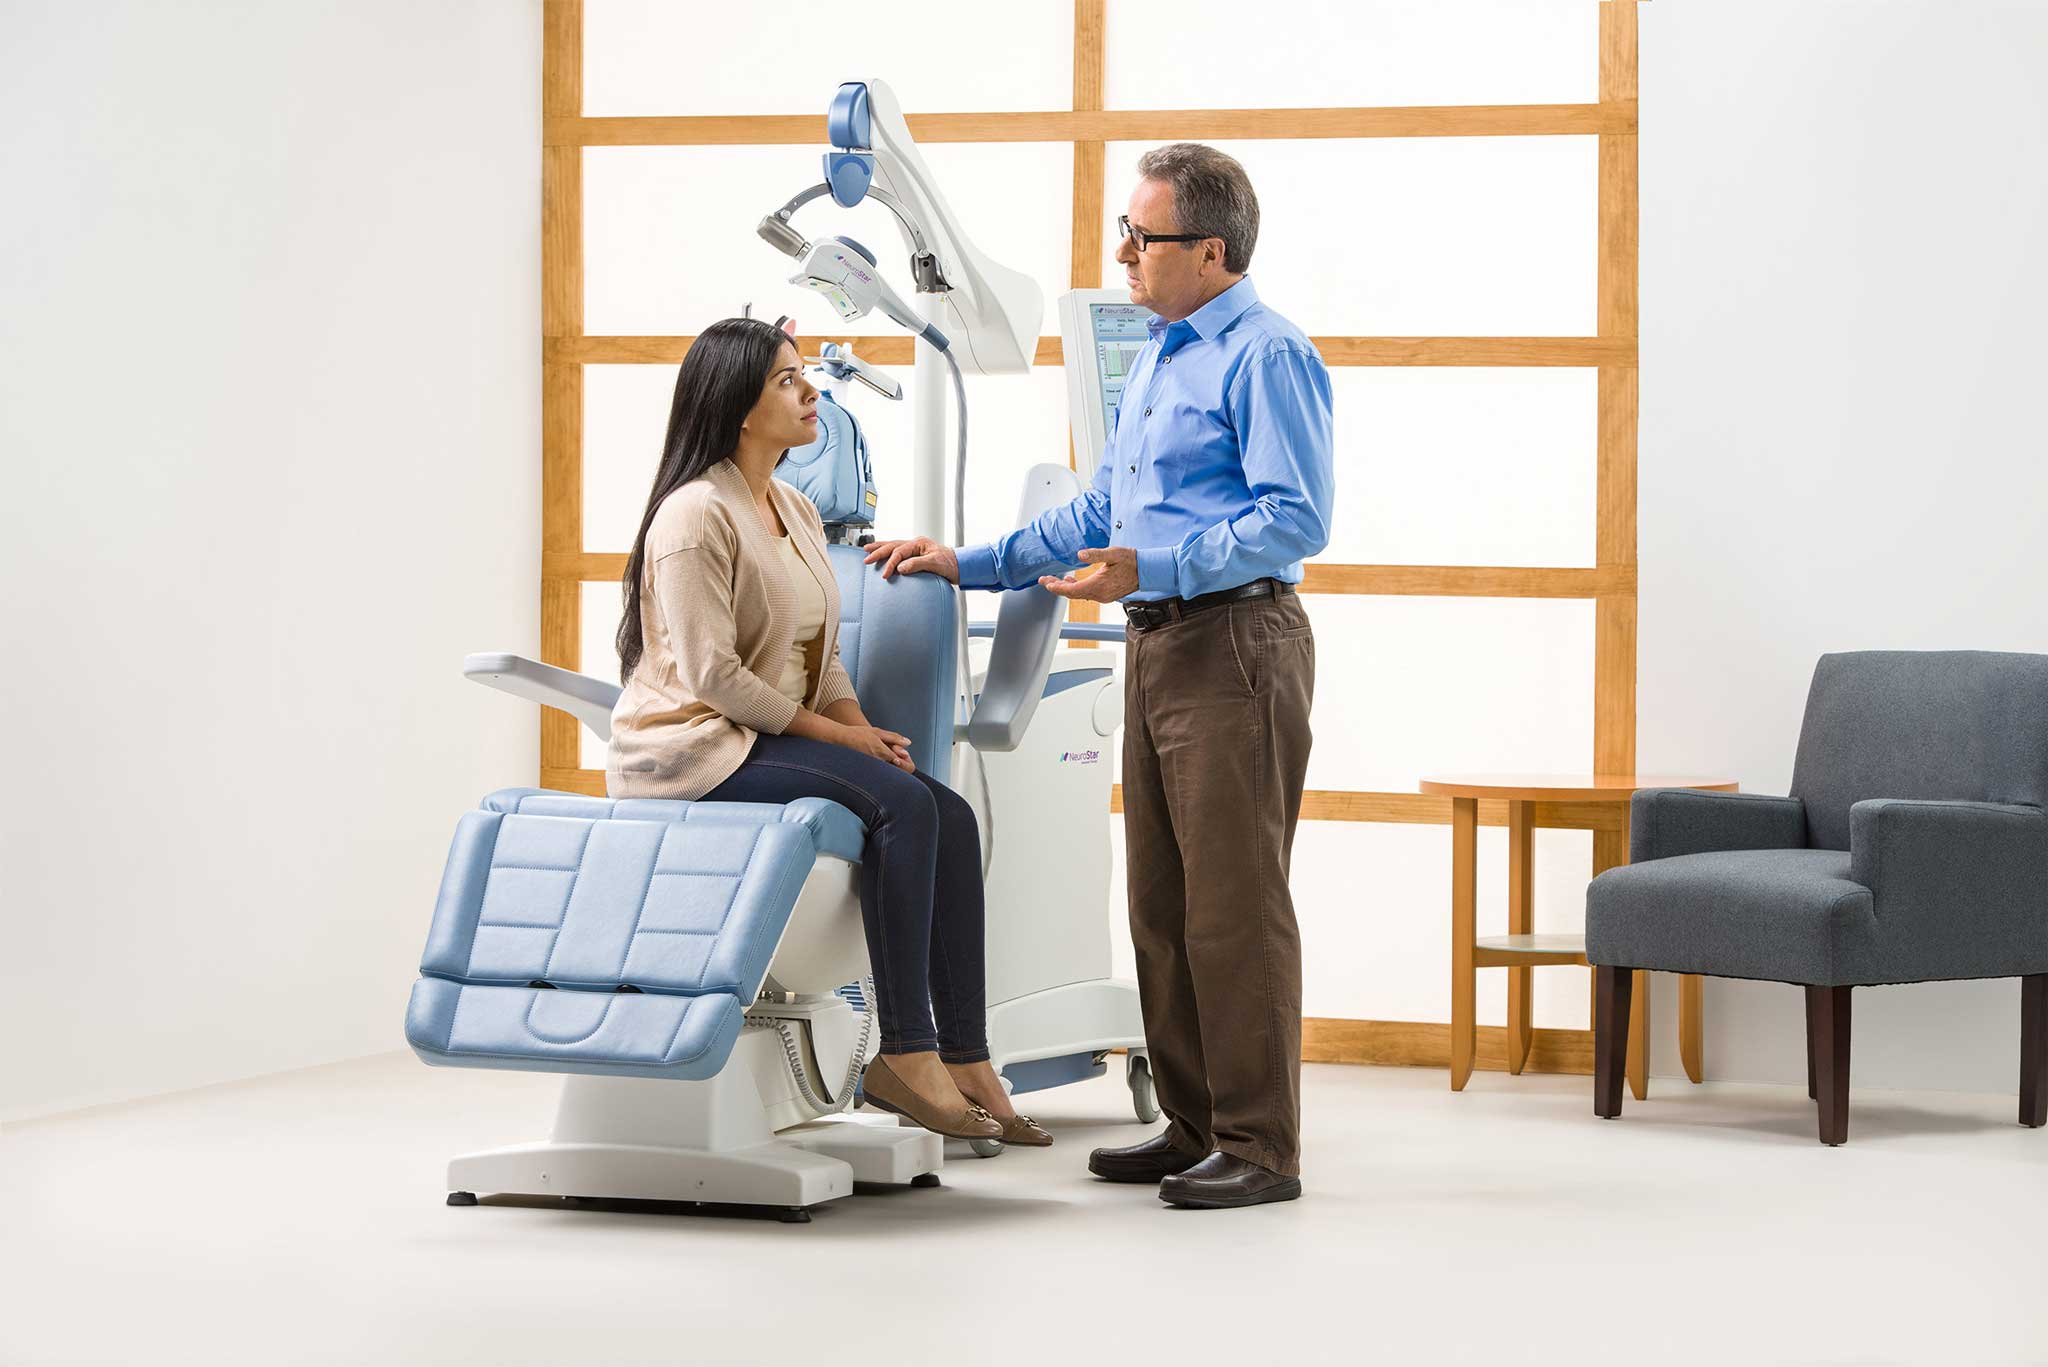 How to Qualify for TMS Treatment